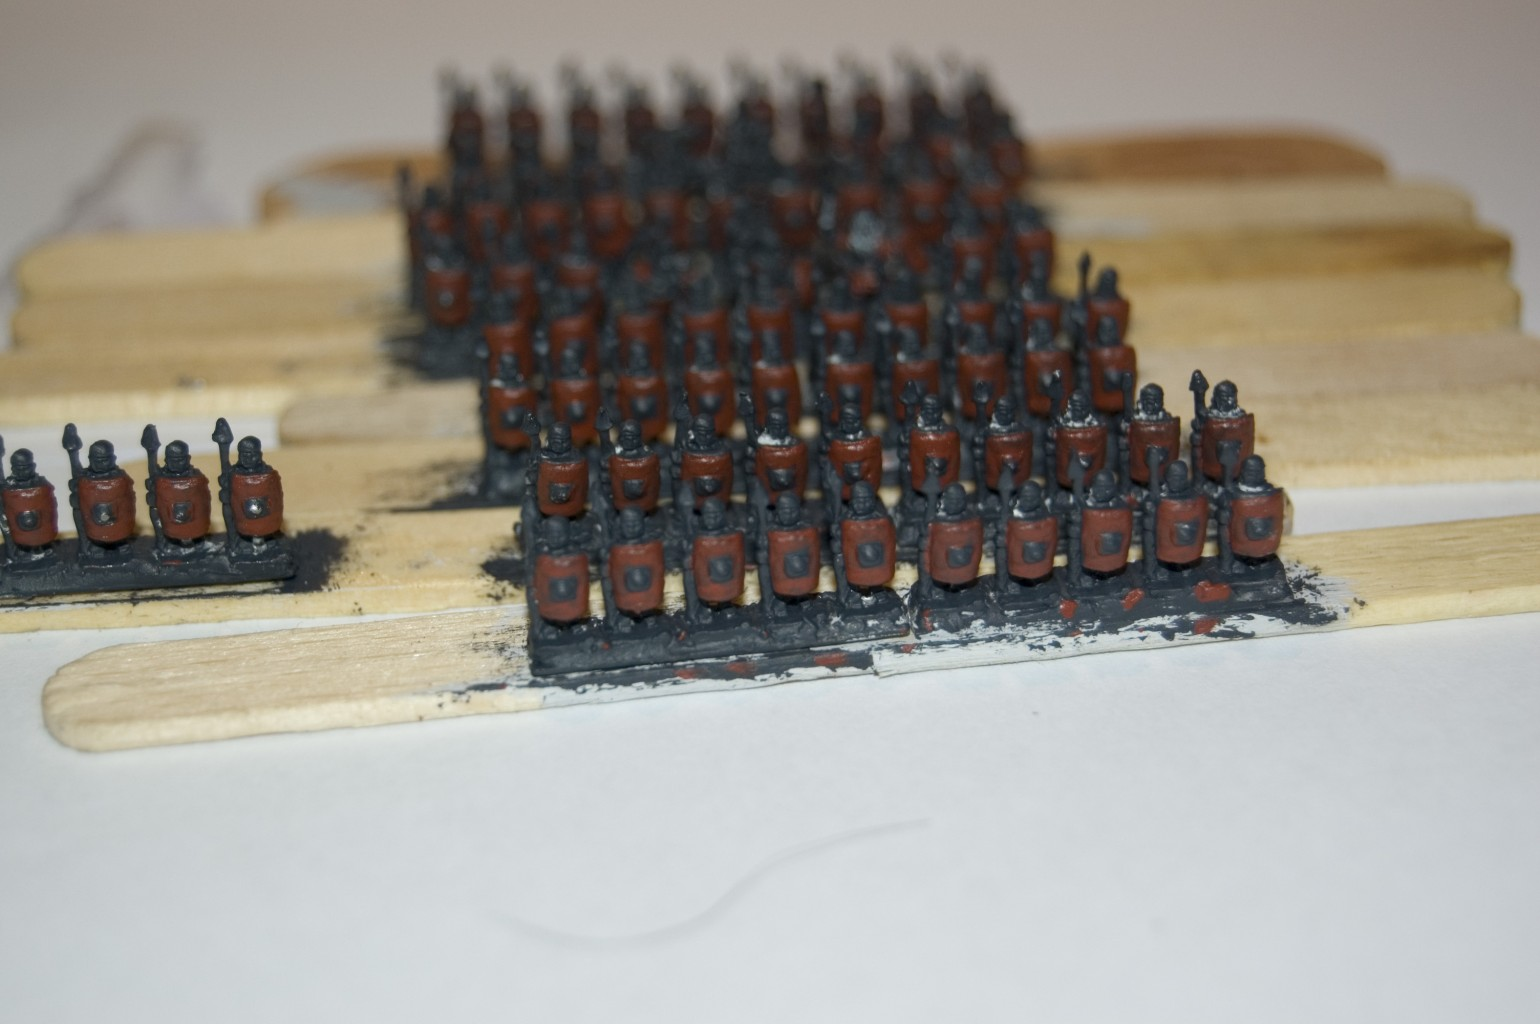 6mm Imperial Romans - Blocking in the red